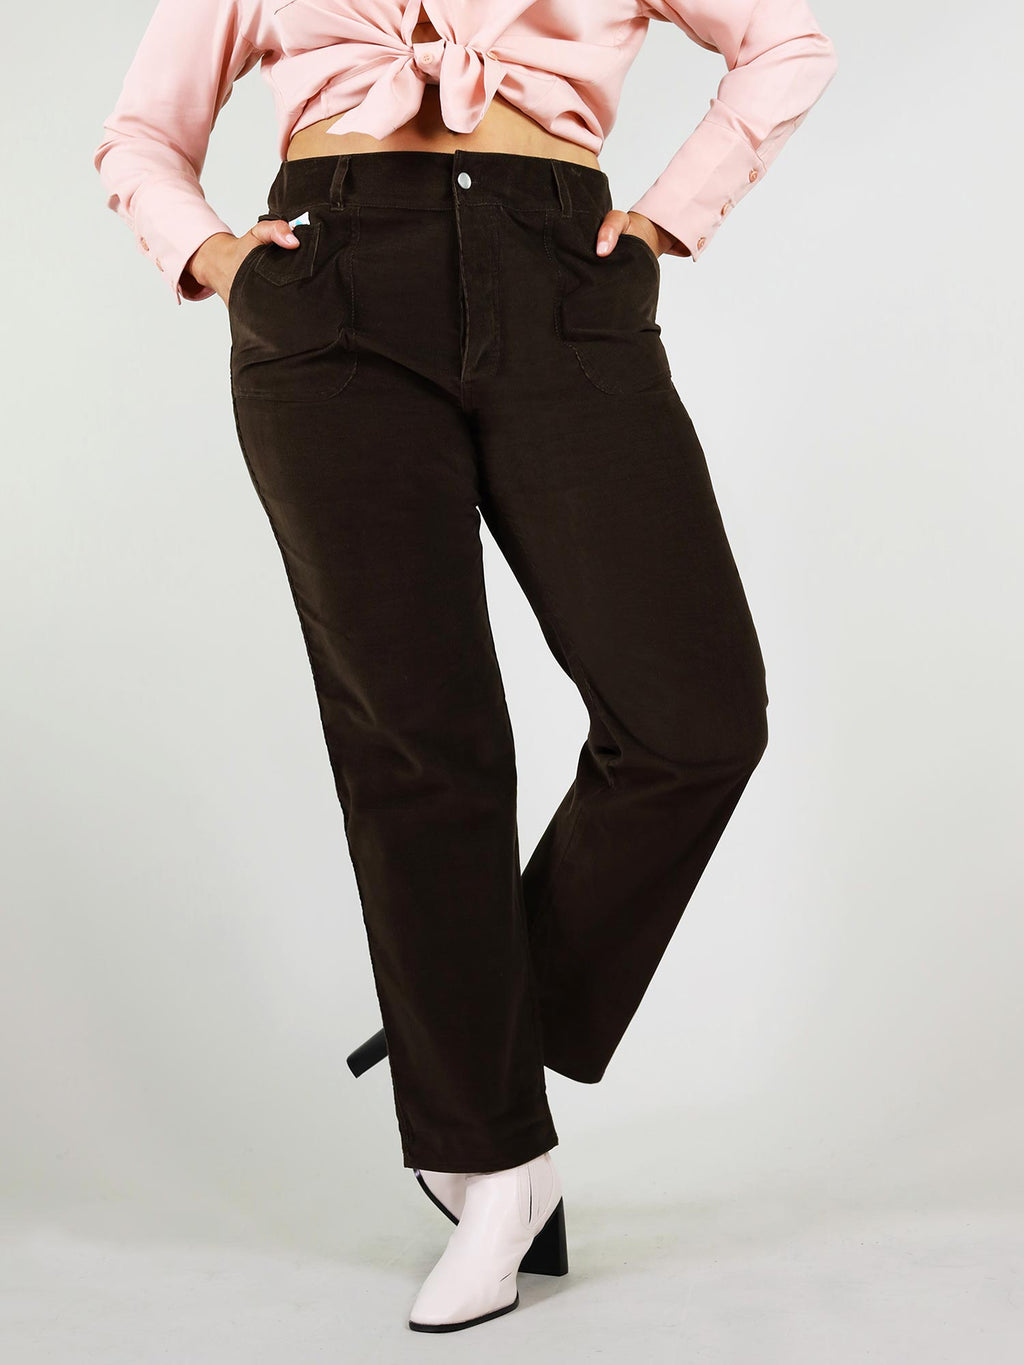 Front view of the classic black corduroy trousers in size xl. High waist and straight leg fit with two large side pockets. Button fastening, logo on the left front side and belt loops.